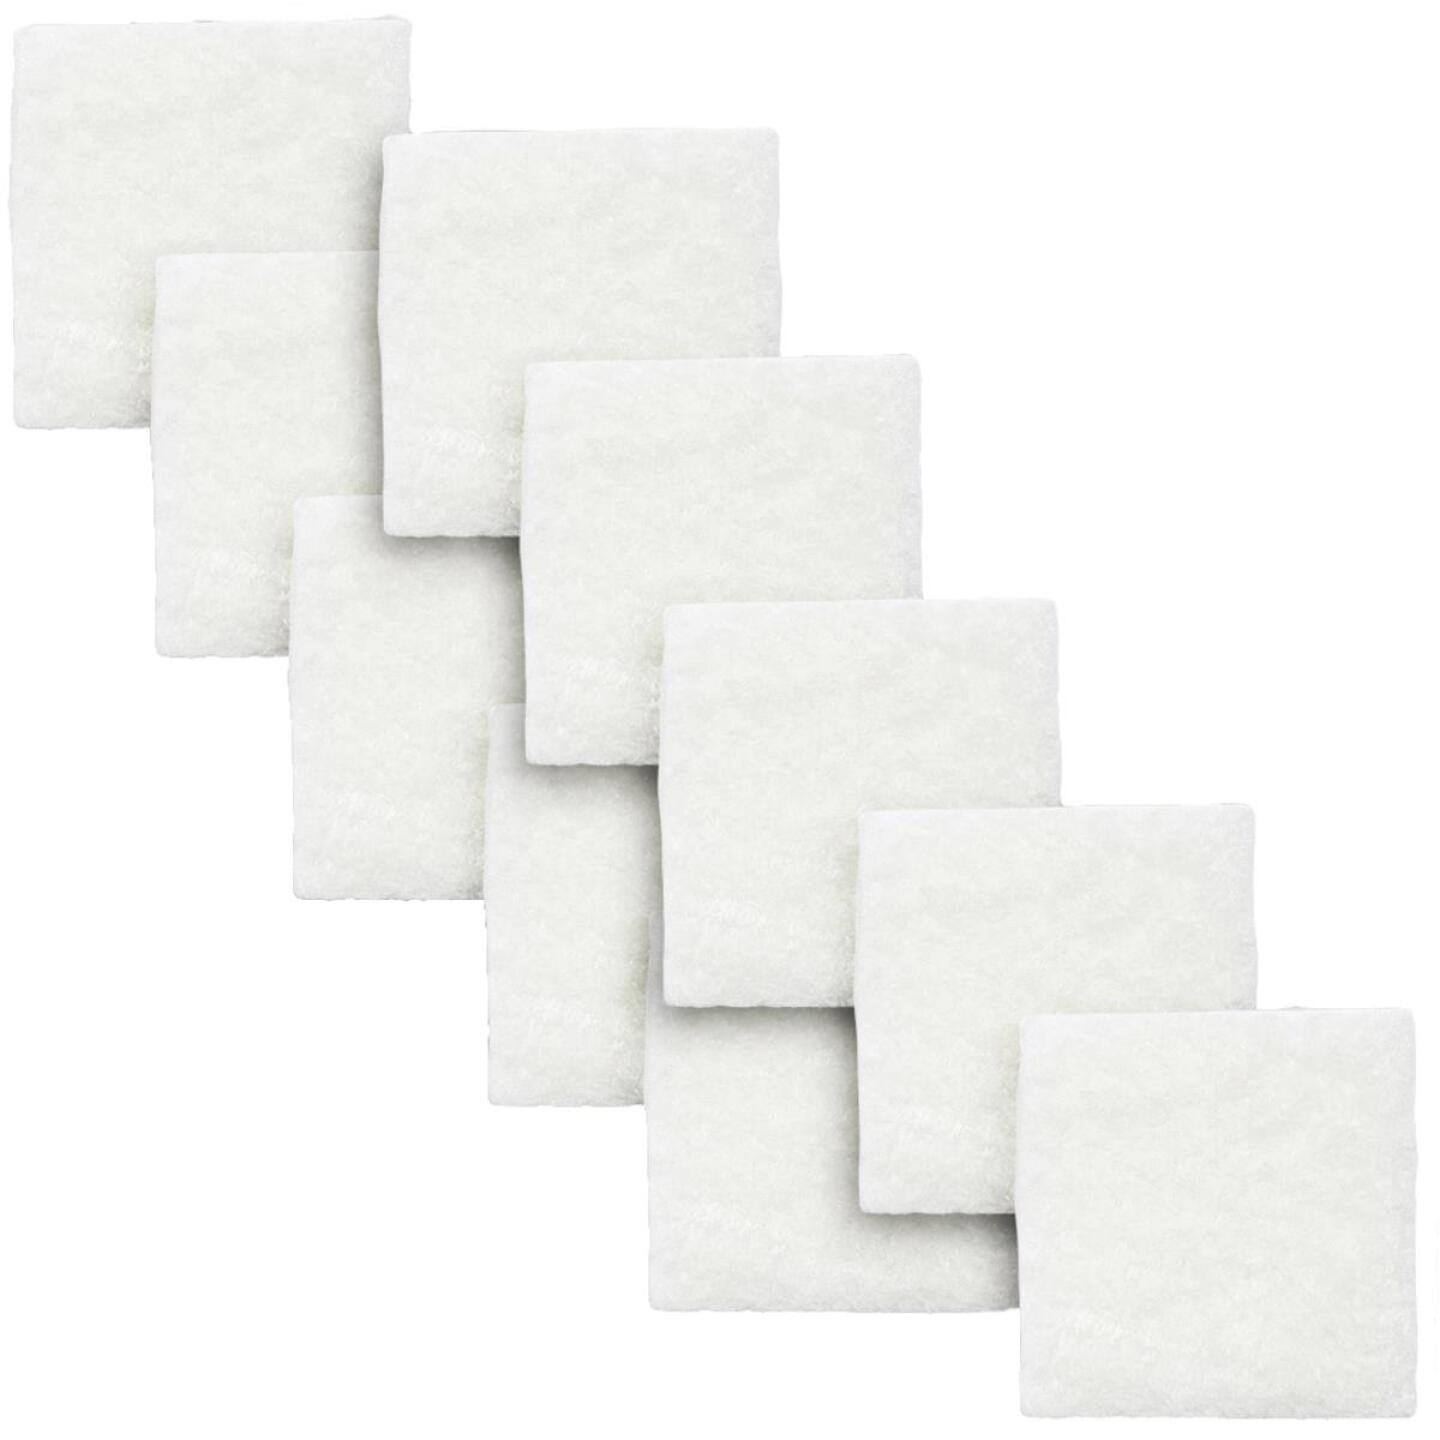 Essick Air Aircare 1 In. Cotton Fiber Aromatherapy Humidifier Oil Pad (10-Pack) Image 1